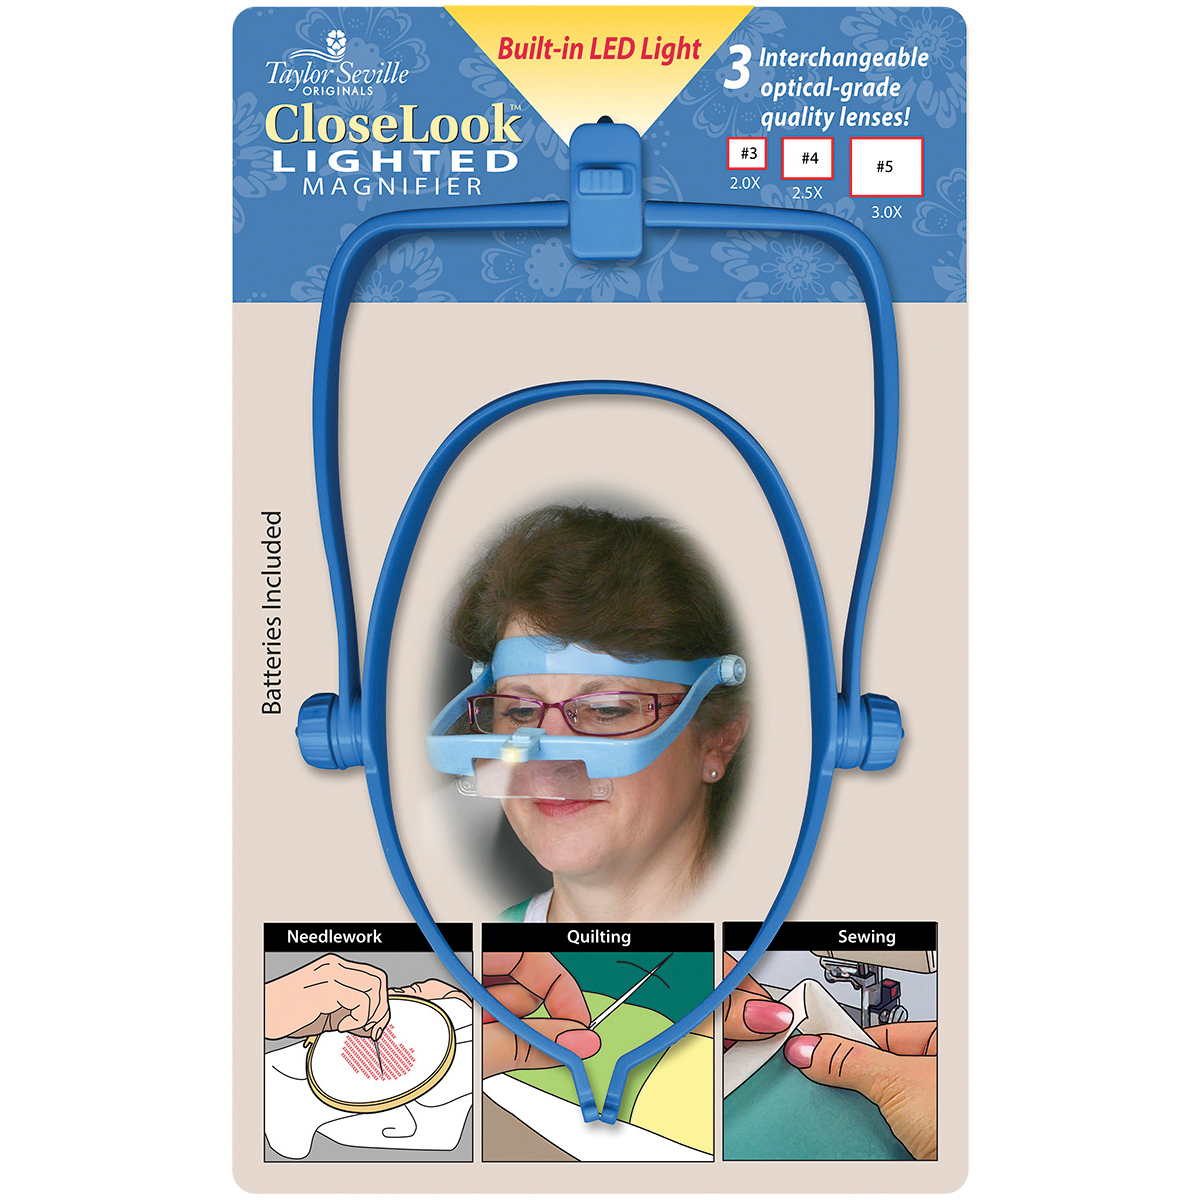 CloseLook Lighted Magnifier-